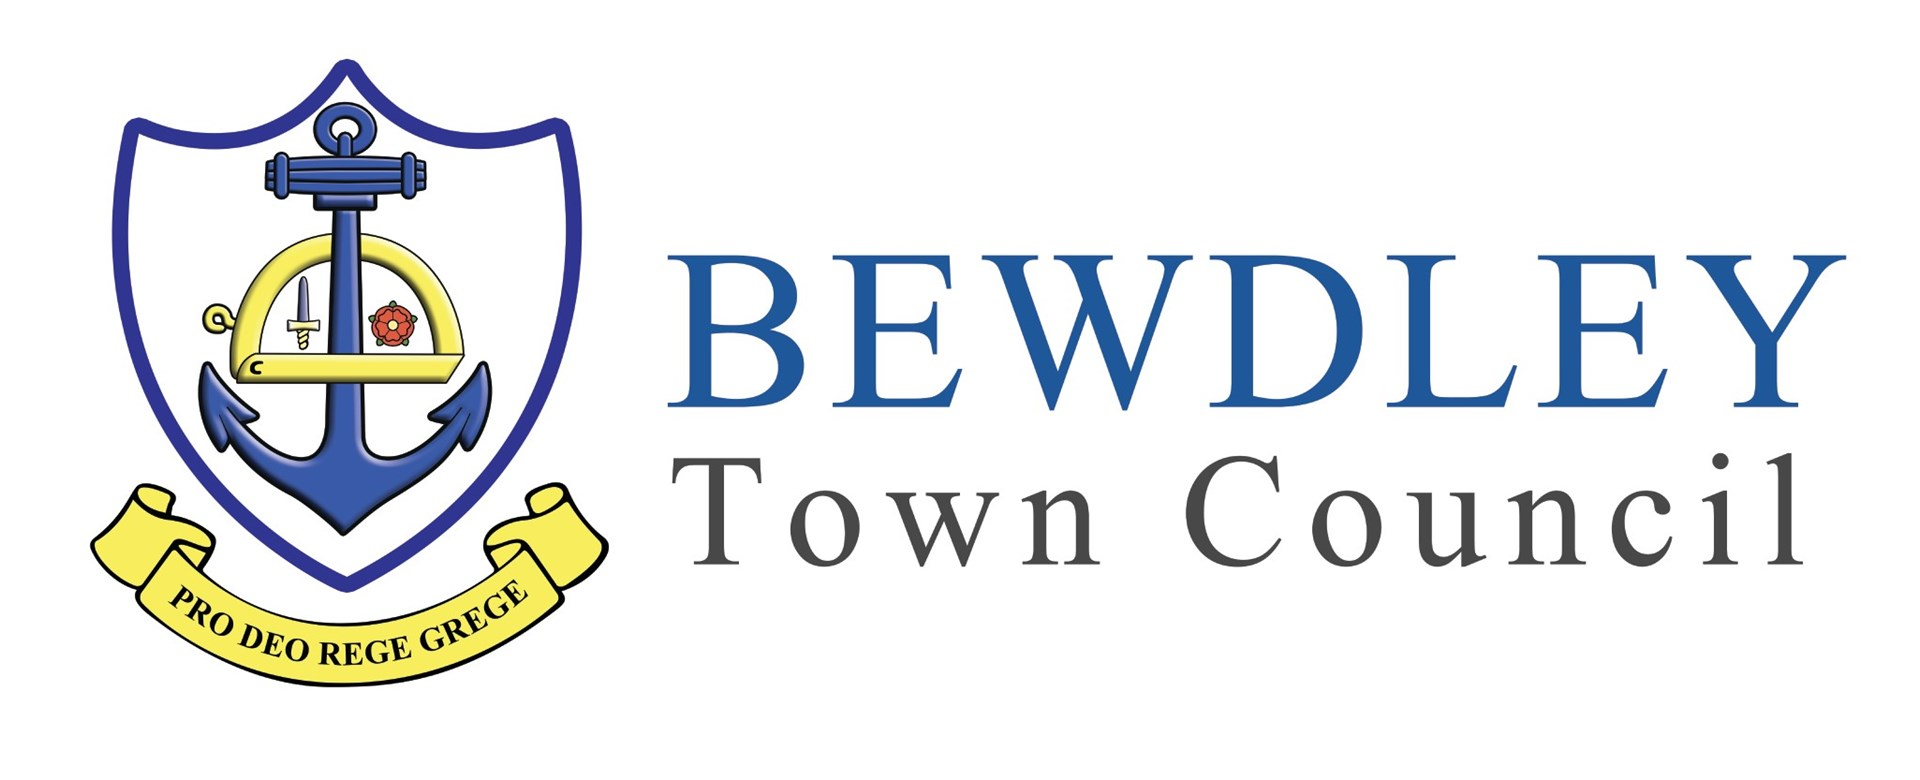 Bewdley Town Council Guidance